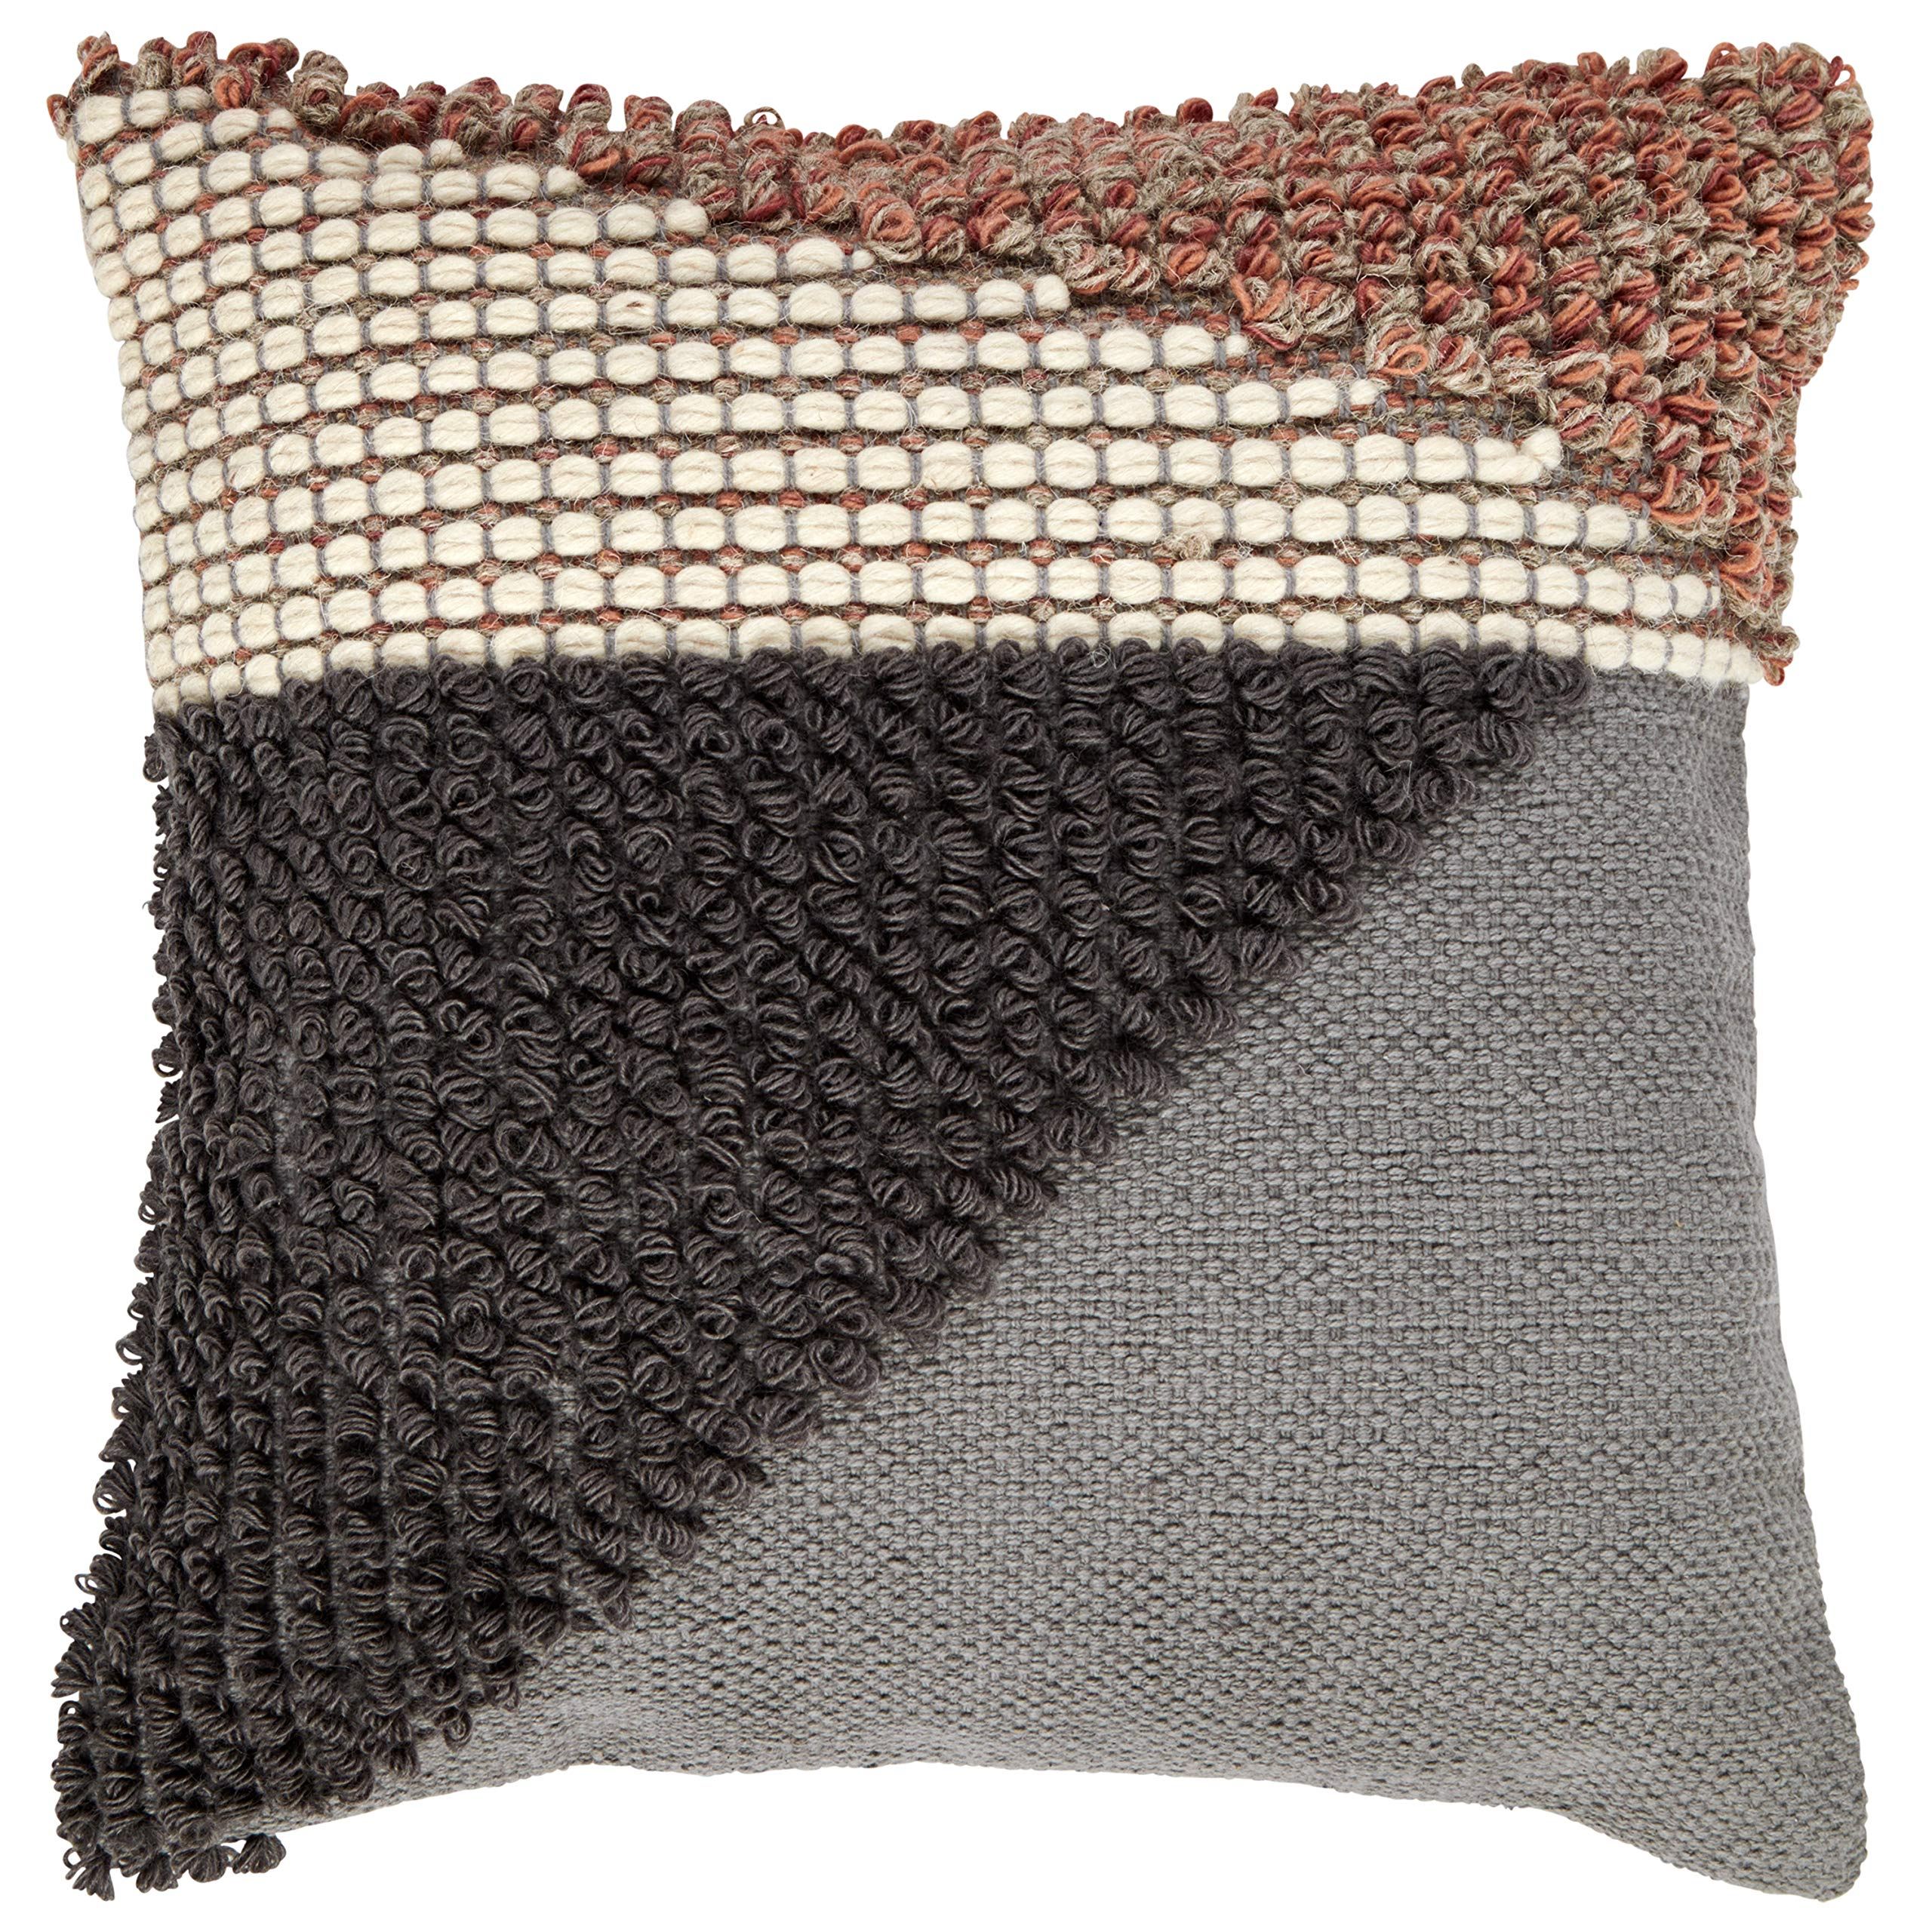 Rivet Modern Multi-Texture Throw Pillow - 18 x 18 Inch, Gray / Red by Rivet